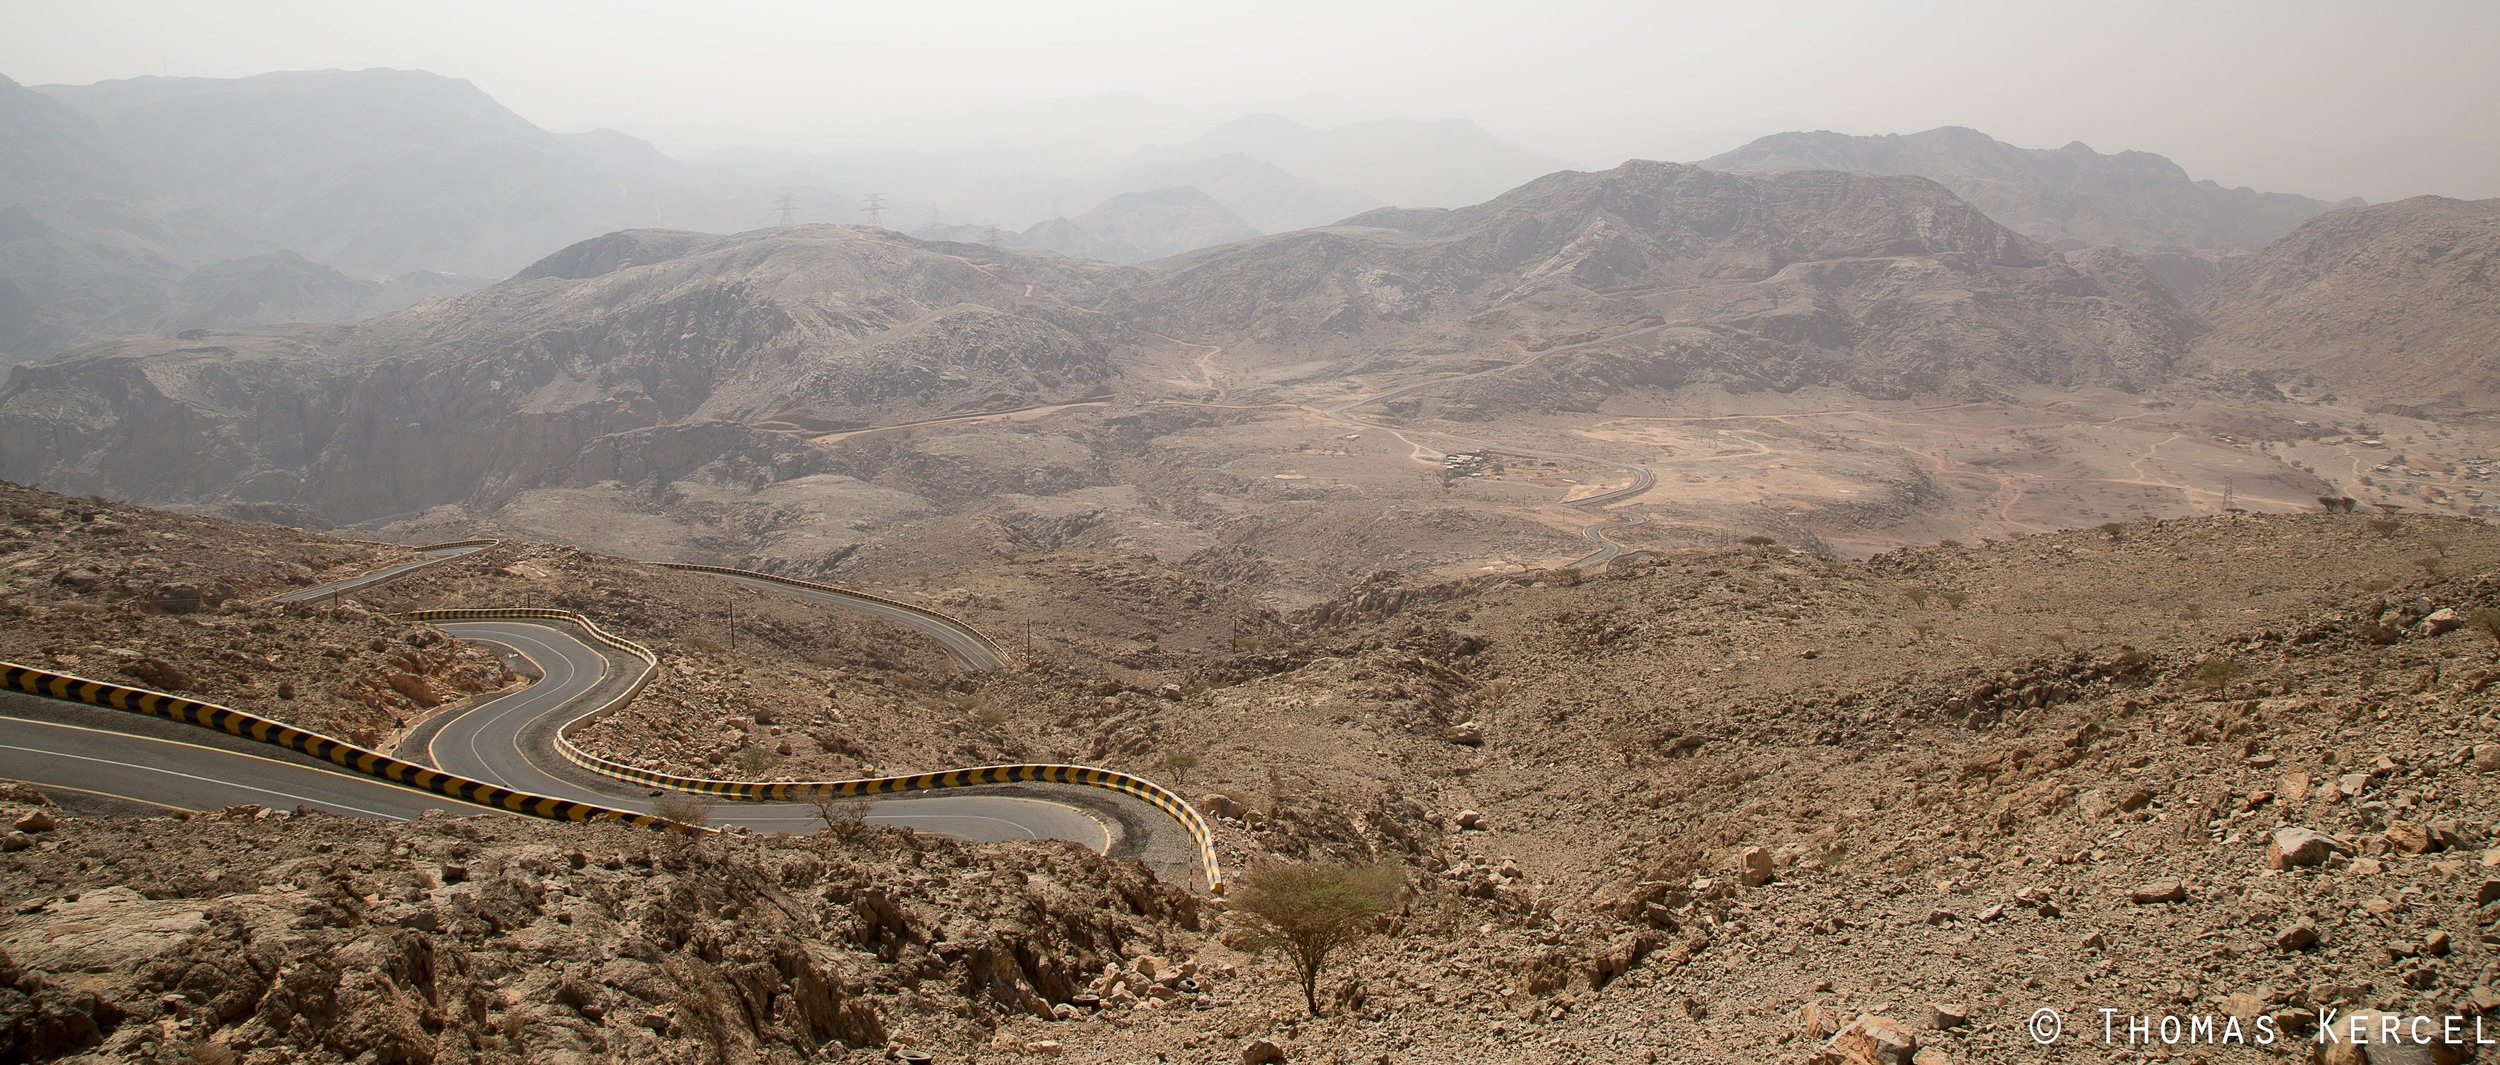 Pictures from a recent trip to Fujairah